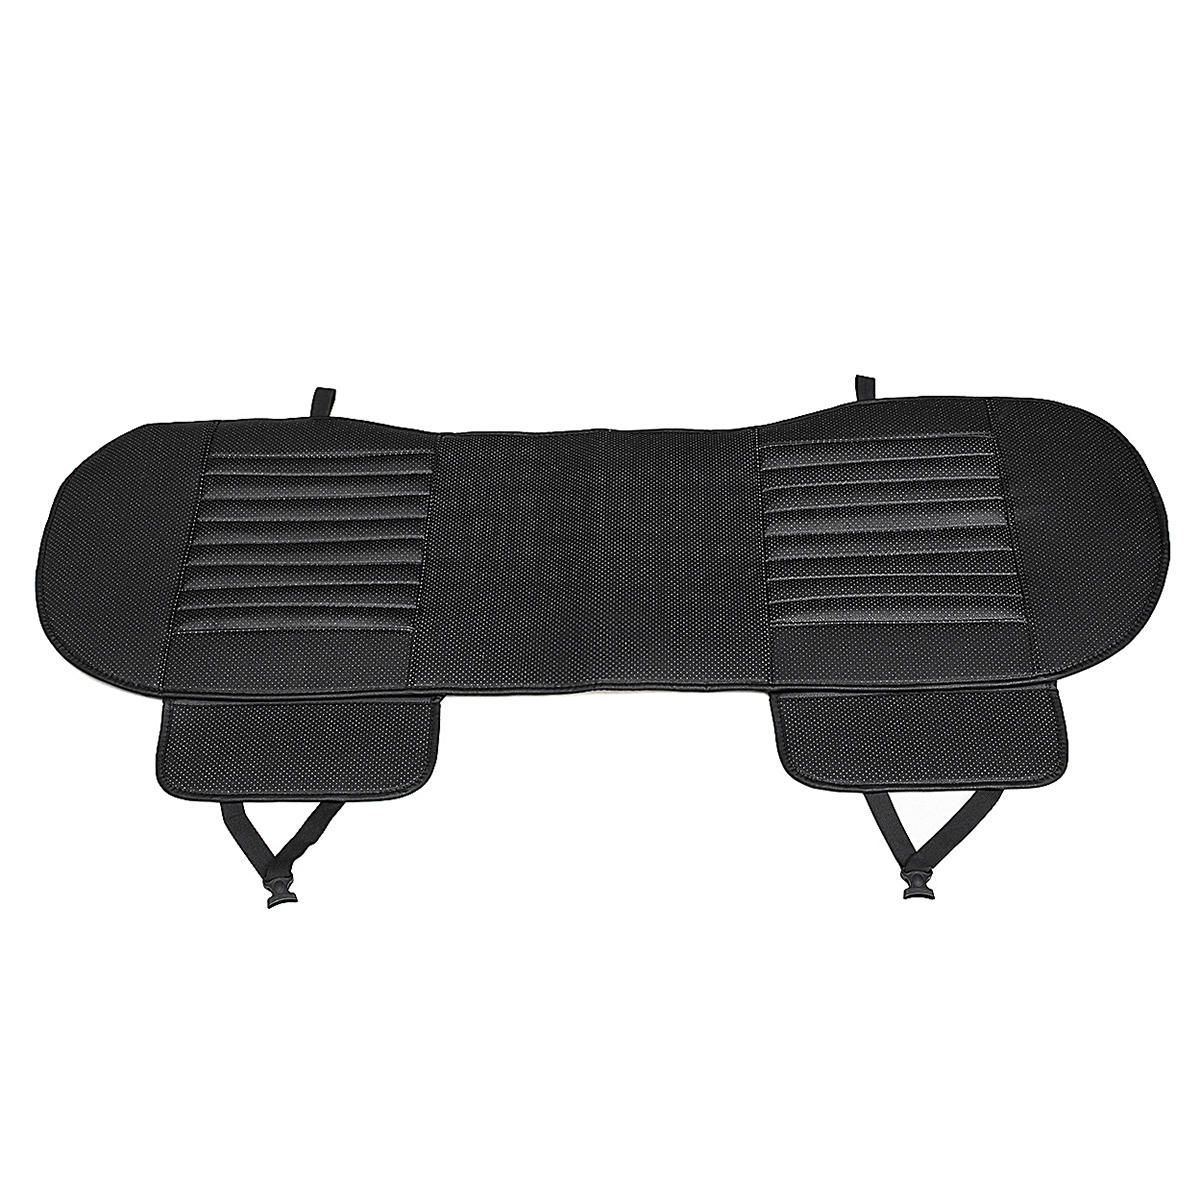 AZL US$28.60 138X49cm PU Leather Car Rear Seat Covers Universal Seat Protector Seat Cushion Pad Mat